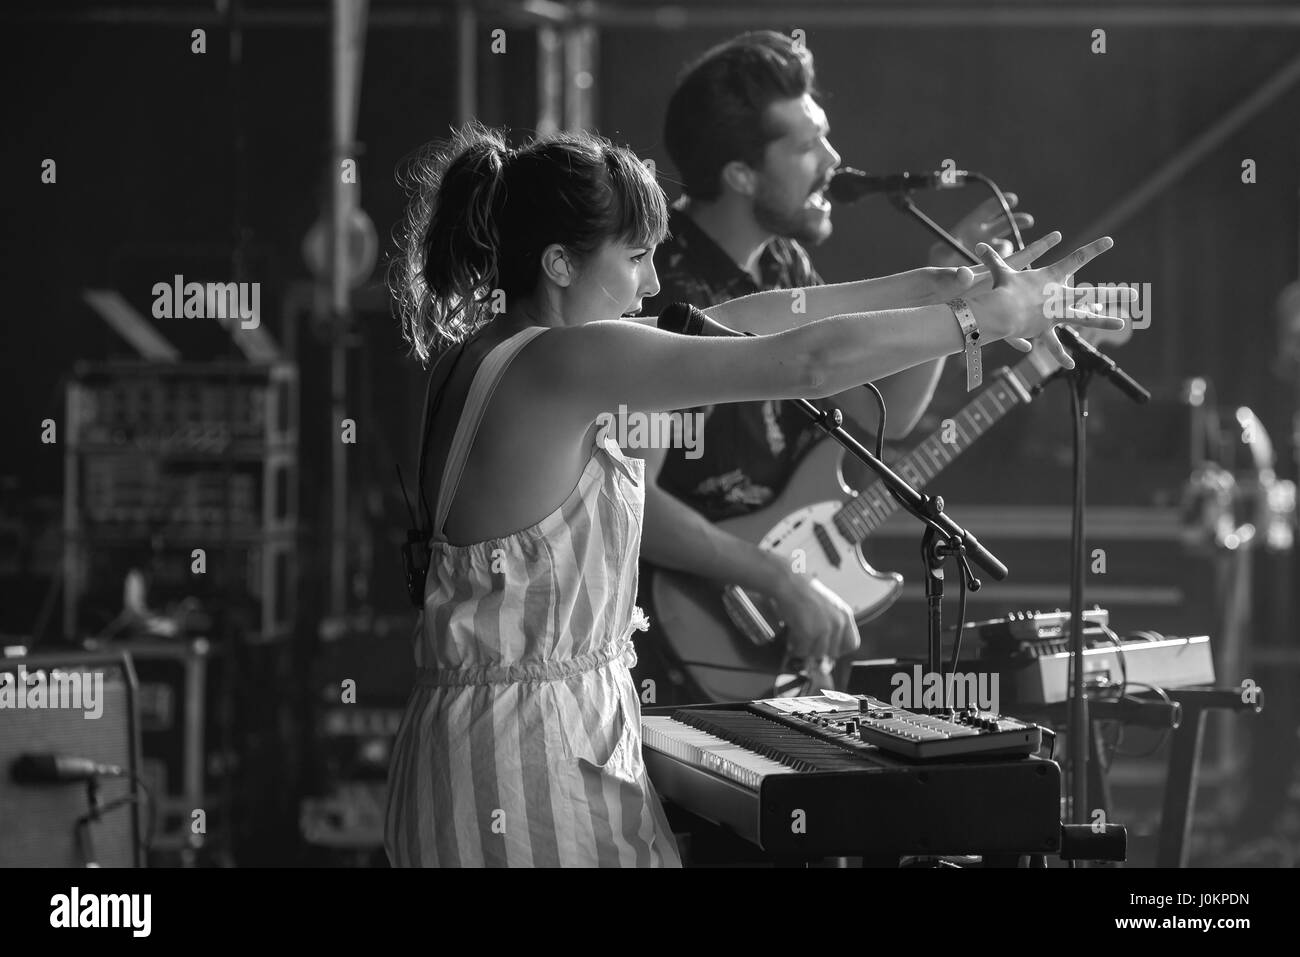 MADRID - SEP 10: Oh Wonder (alt-pop band) perform in concert at Dcode Music Festival on September 10, 2016 in Madrid, - Stock Image